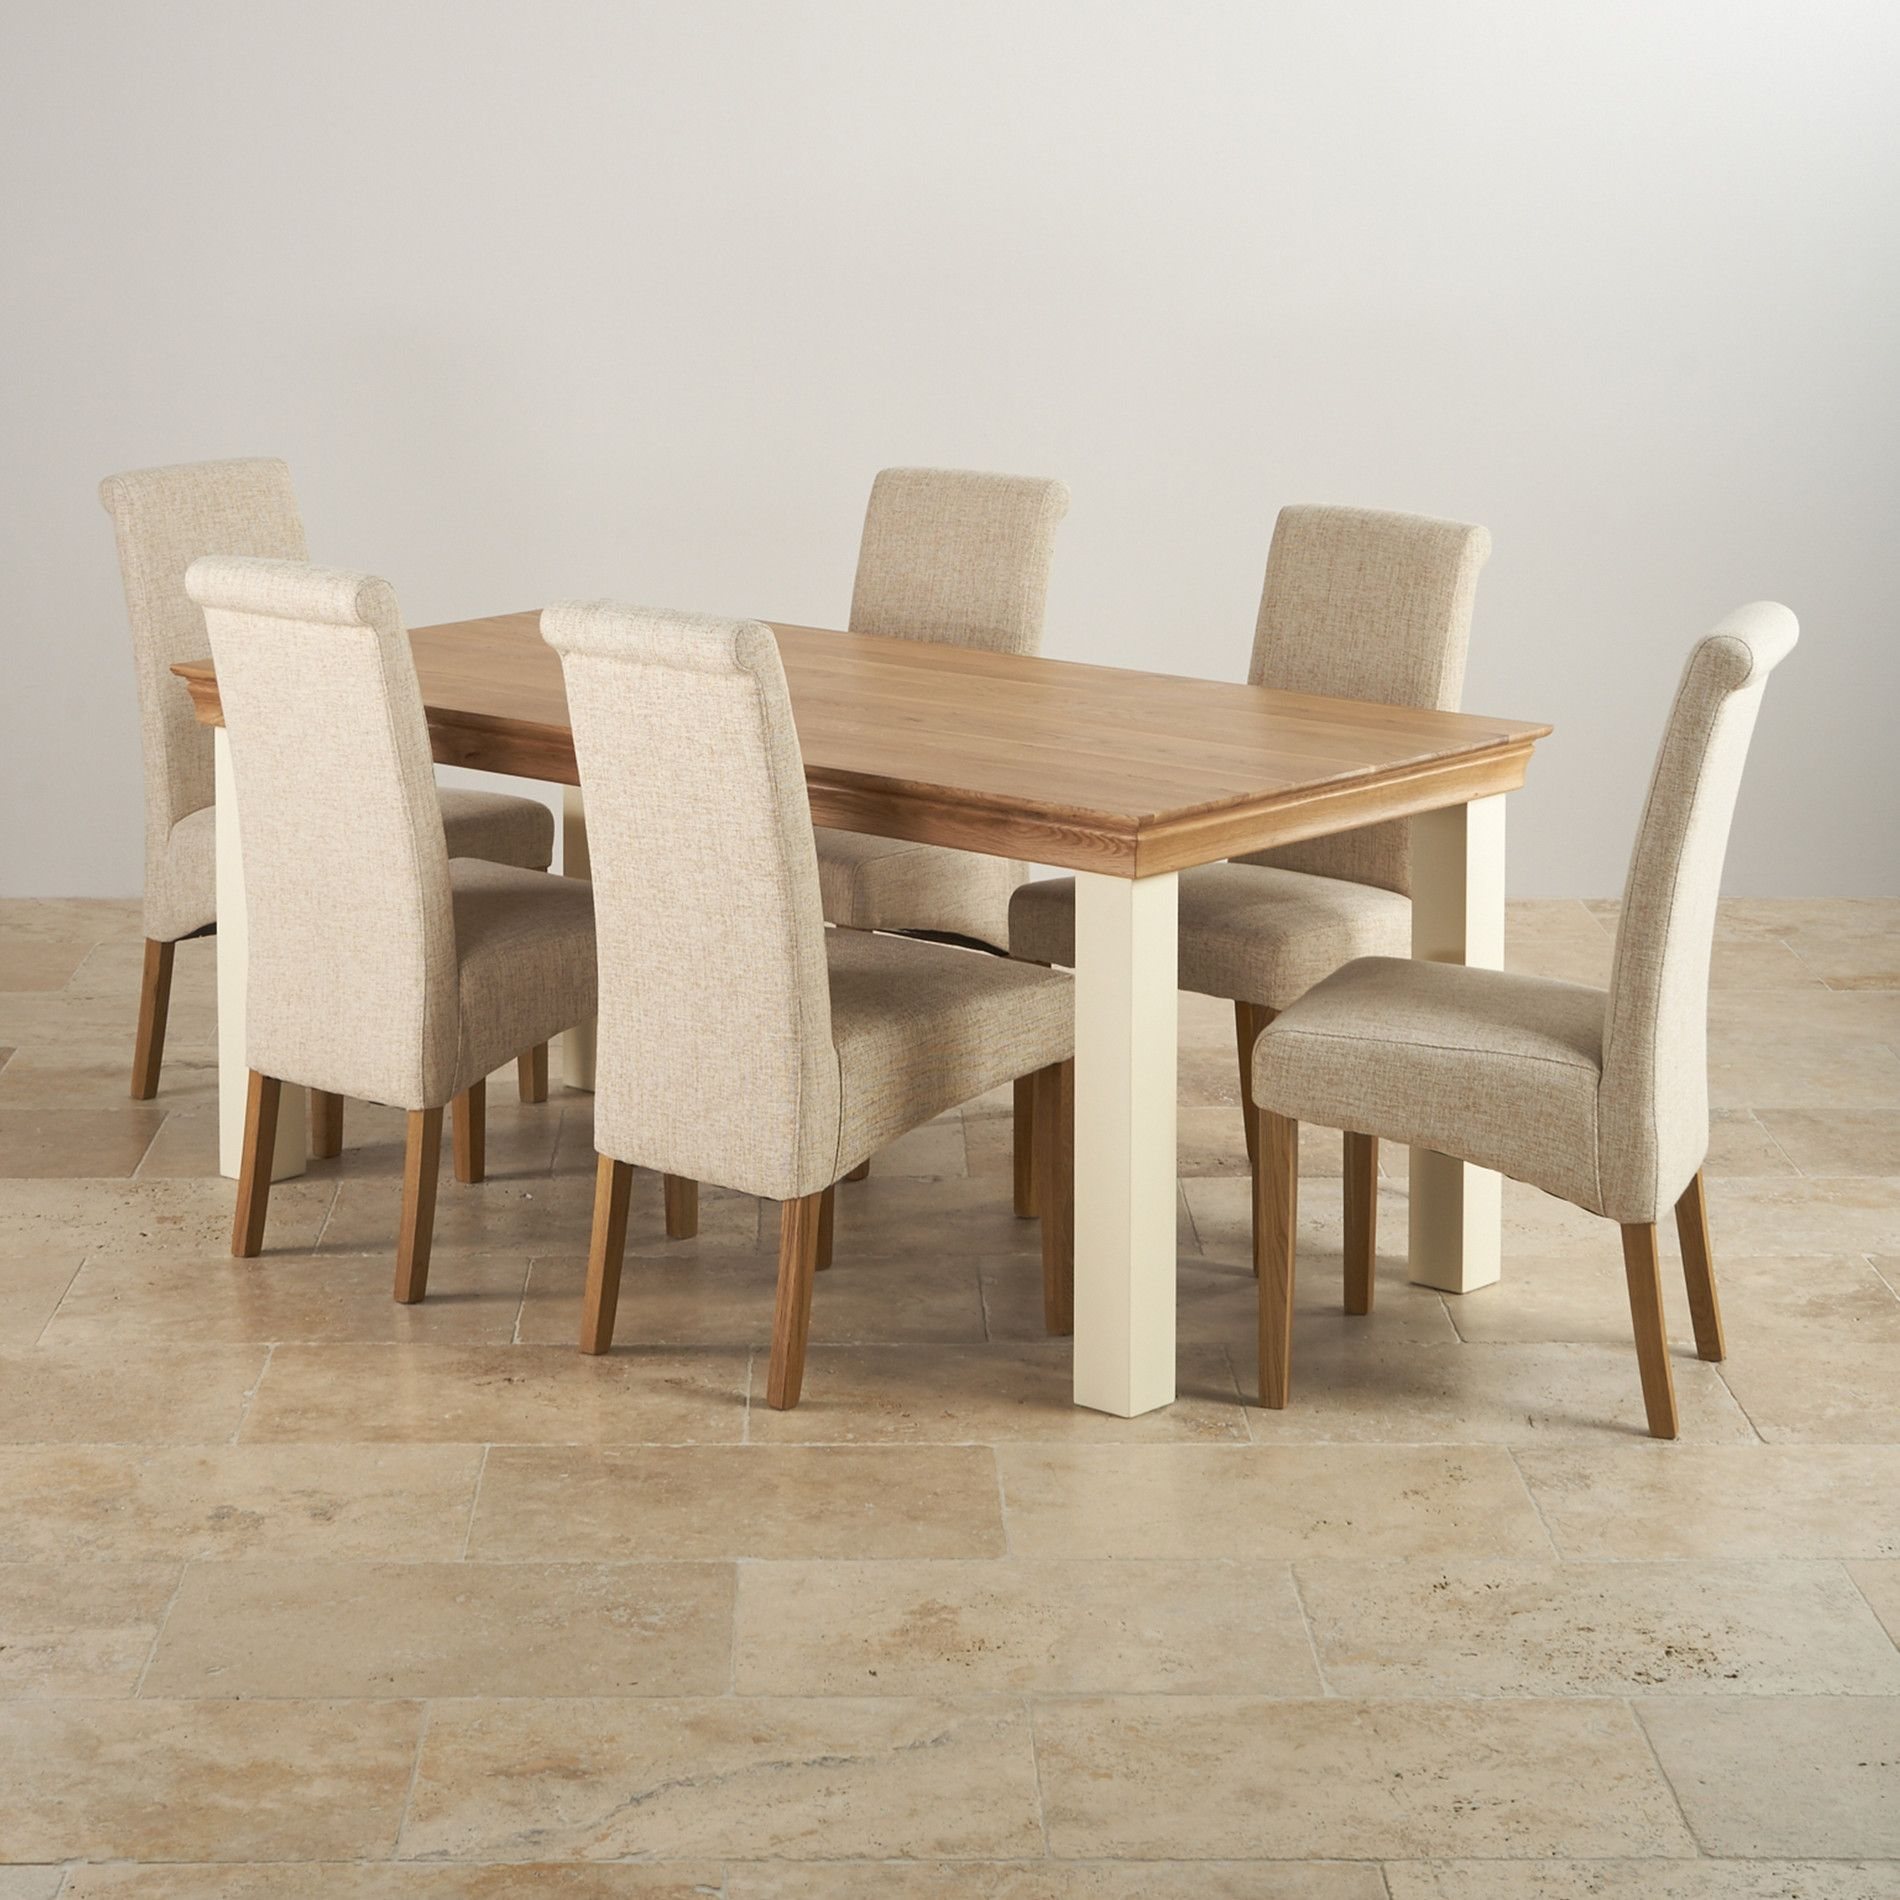 Country Cottage Natural Oak And Painted Dining Set Ft Table With - 6ft dining table and chairs